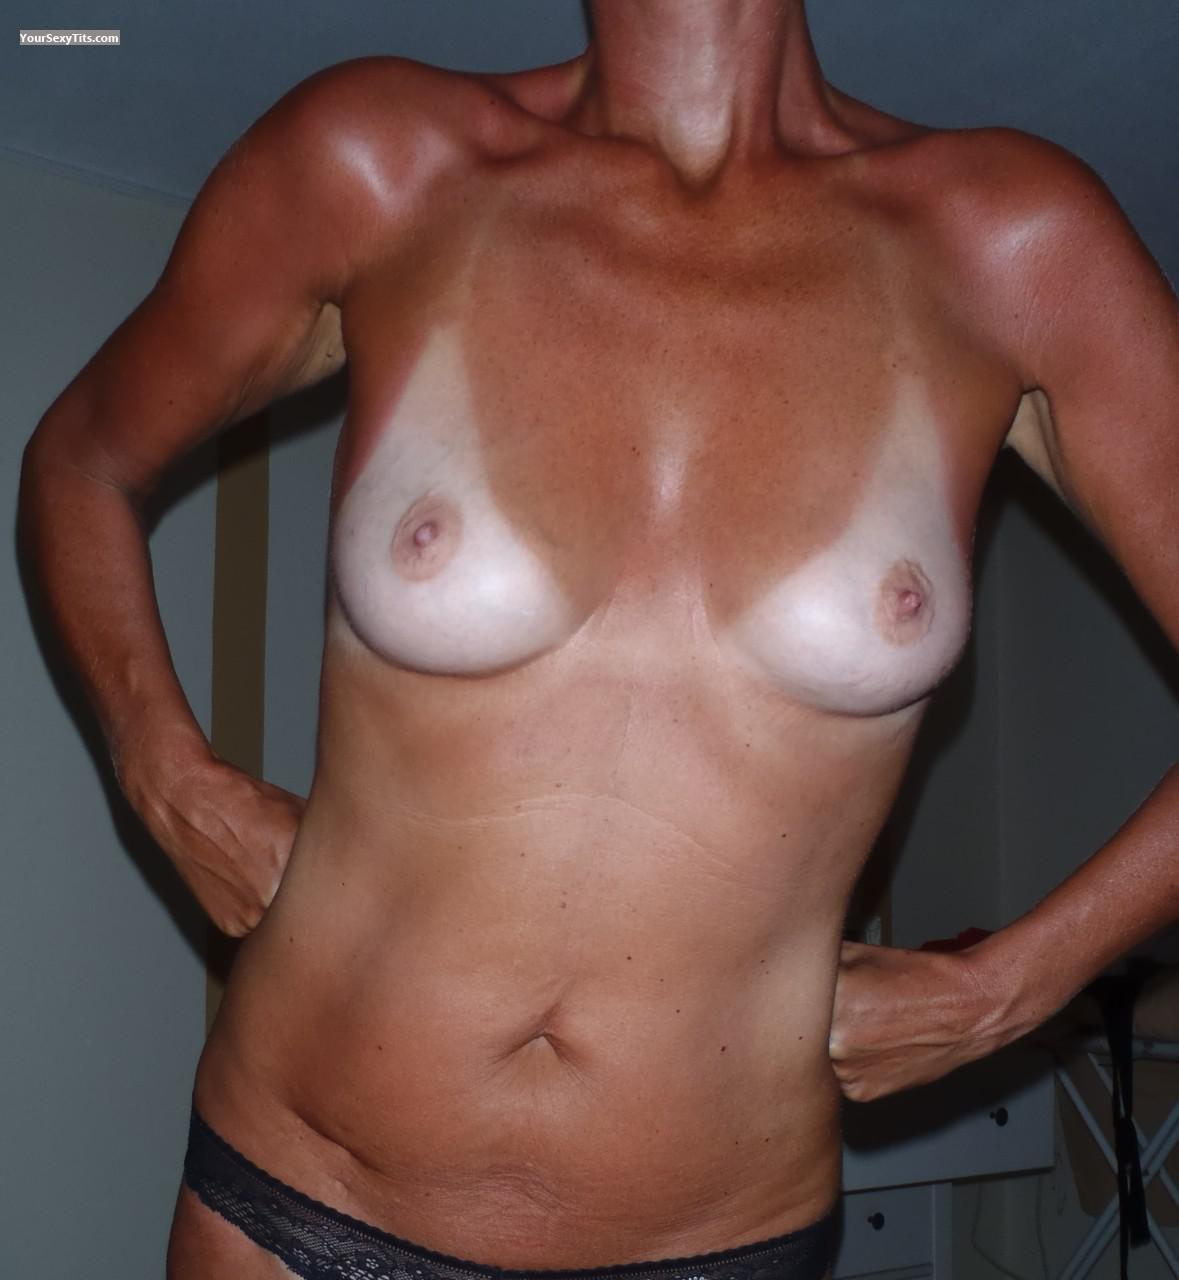 Small Tits Of My Wife Onehappy2010